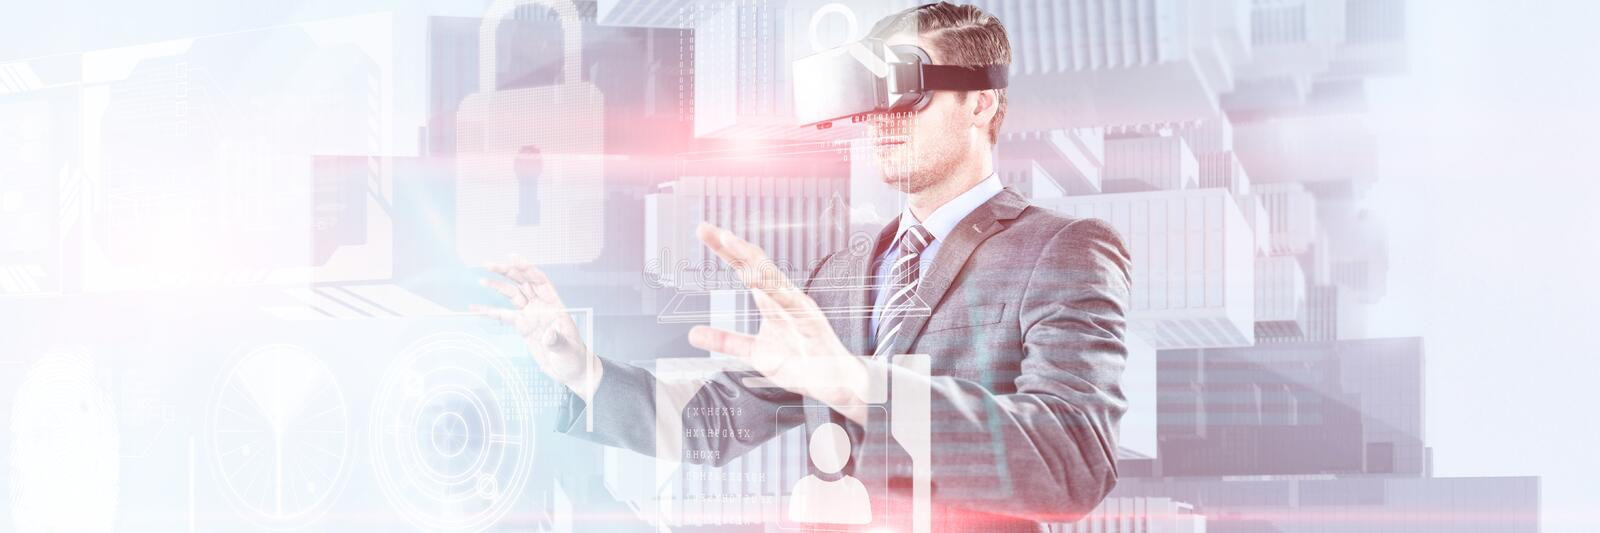 Composite image of businessman gesturing while using virtual reality headset. Businessman gesturing while using virtual reality headset against composite image royalty free stock photos